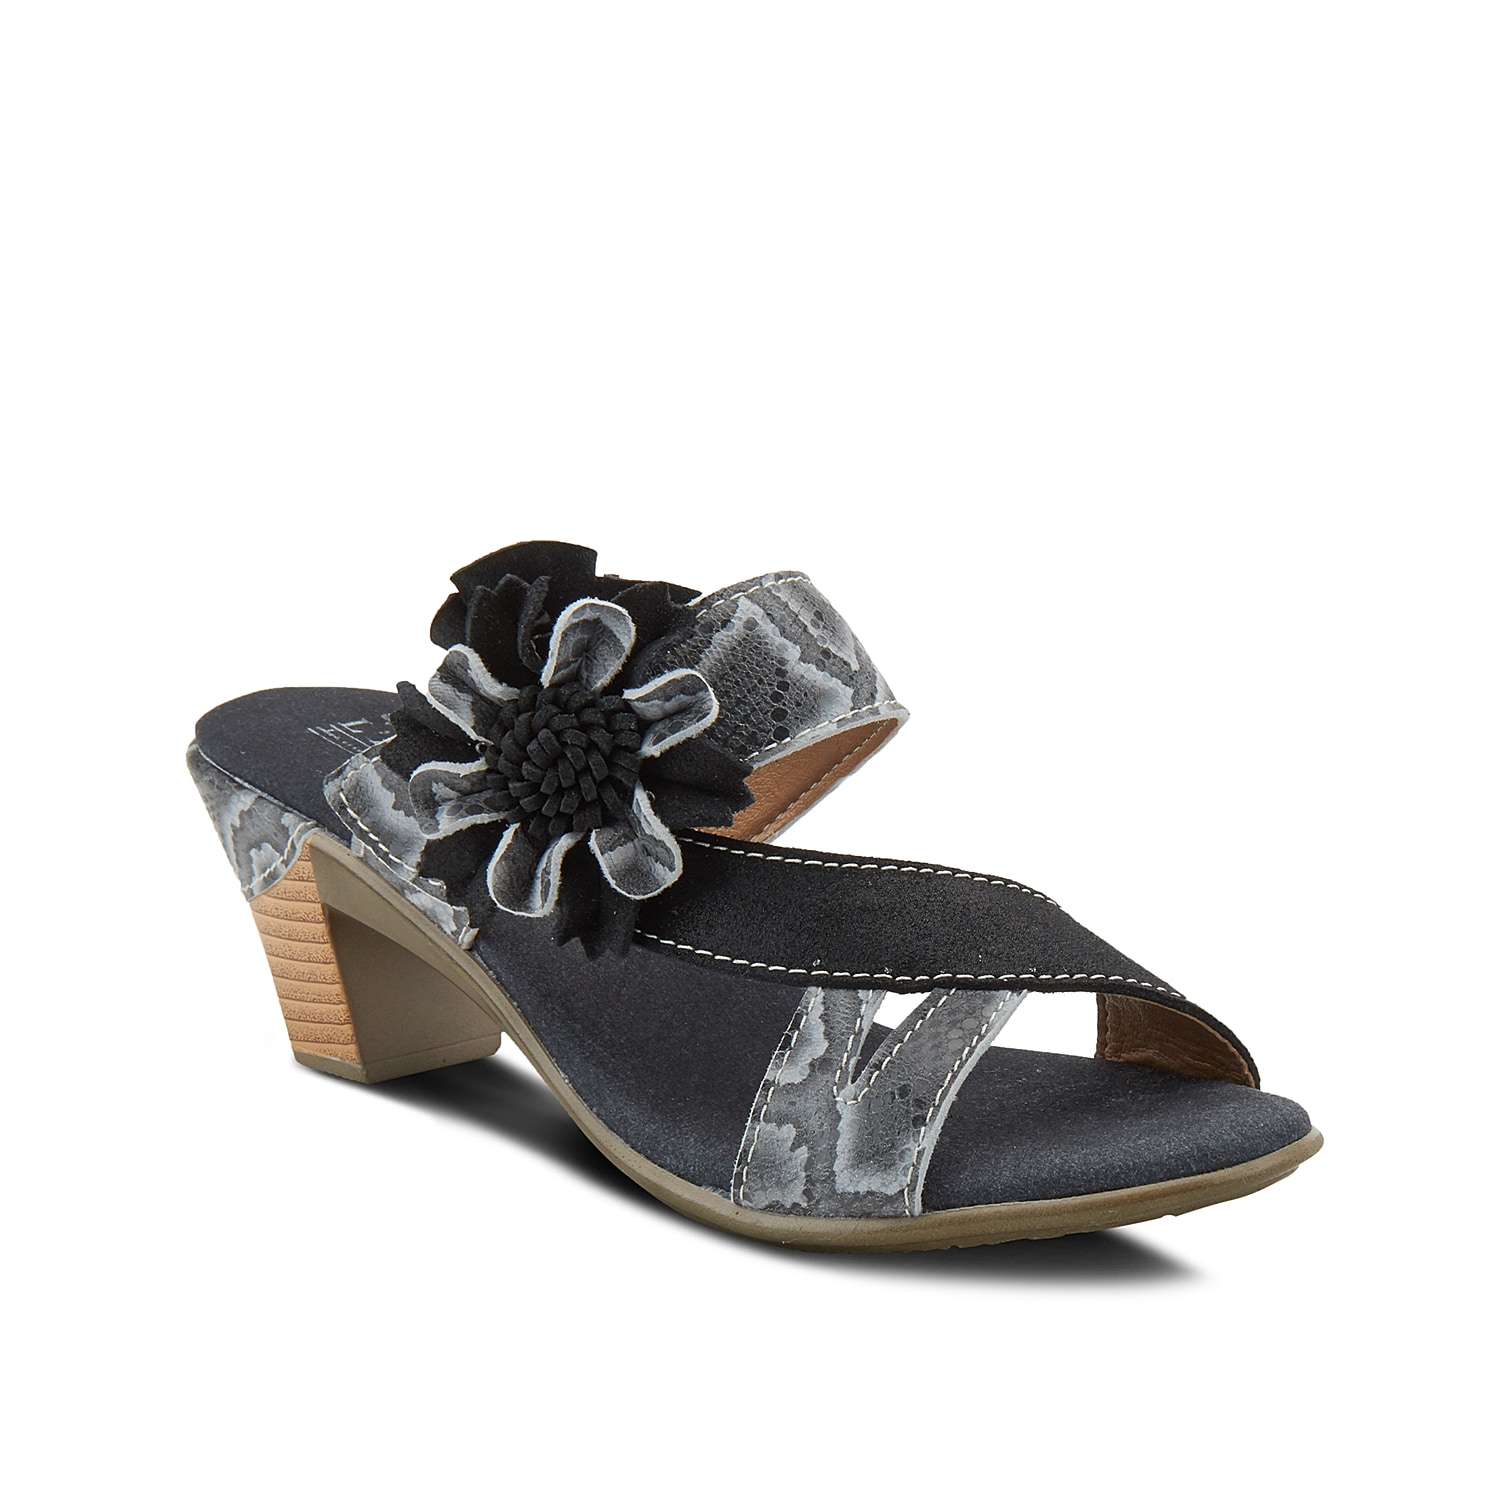 Slide into the Cassana sandal from L\\\'Artiste by Spring Step to freshen up your warm weather wardrobe. This pair features a floral applique and asymmetrical strap for eye-catching appeal.